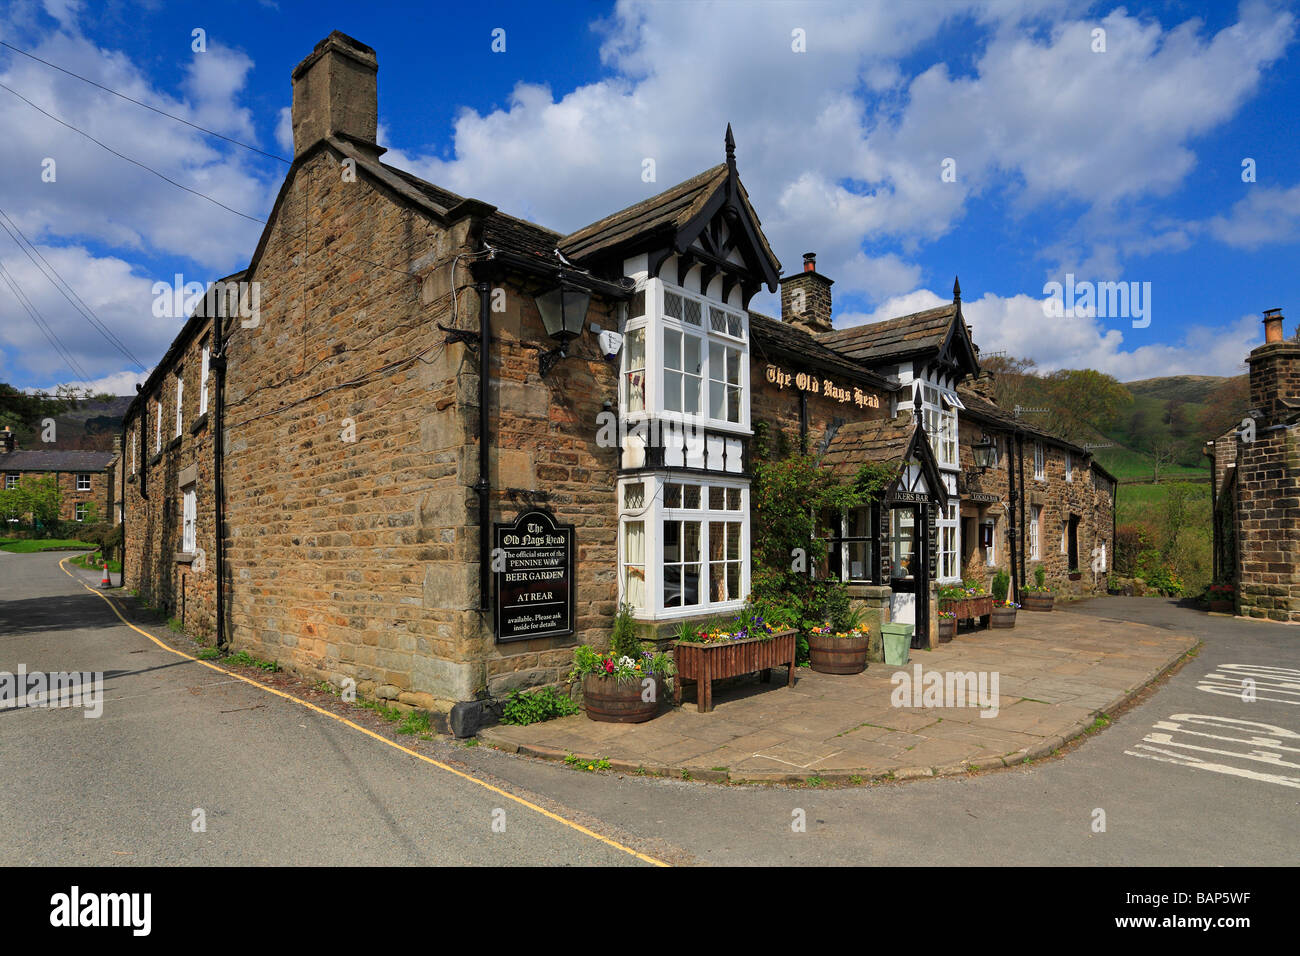 The Old Nags Head pub start of the Pennine Way at Edale, Derbyshire, Peak District National Park, England, UK. - Stock Image